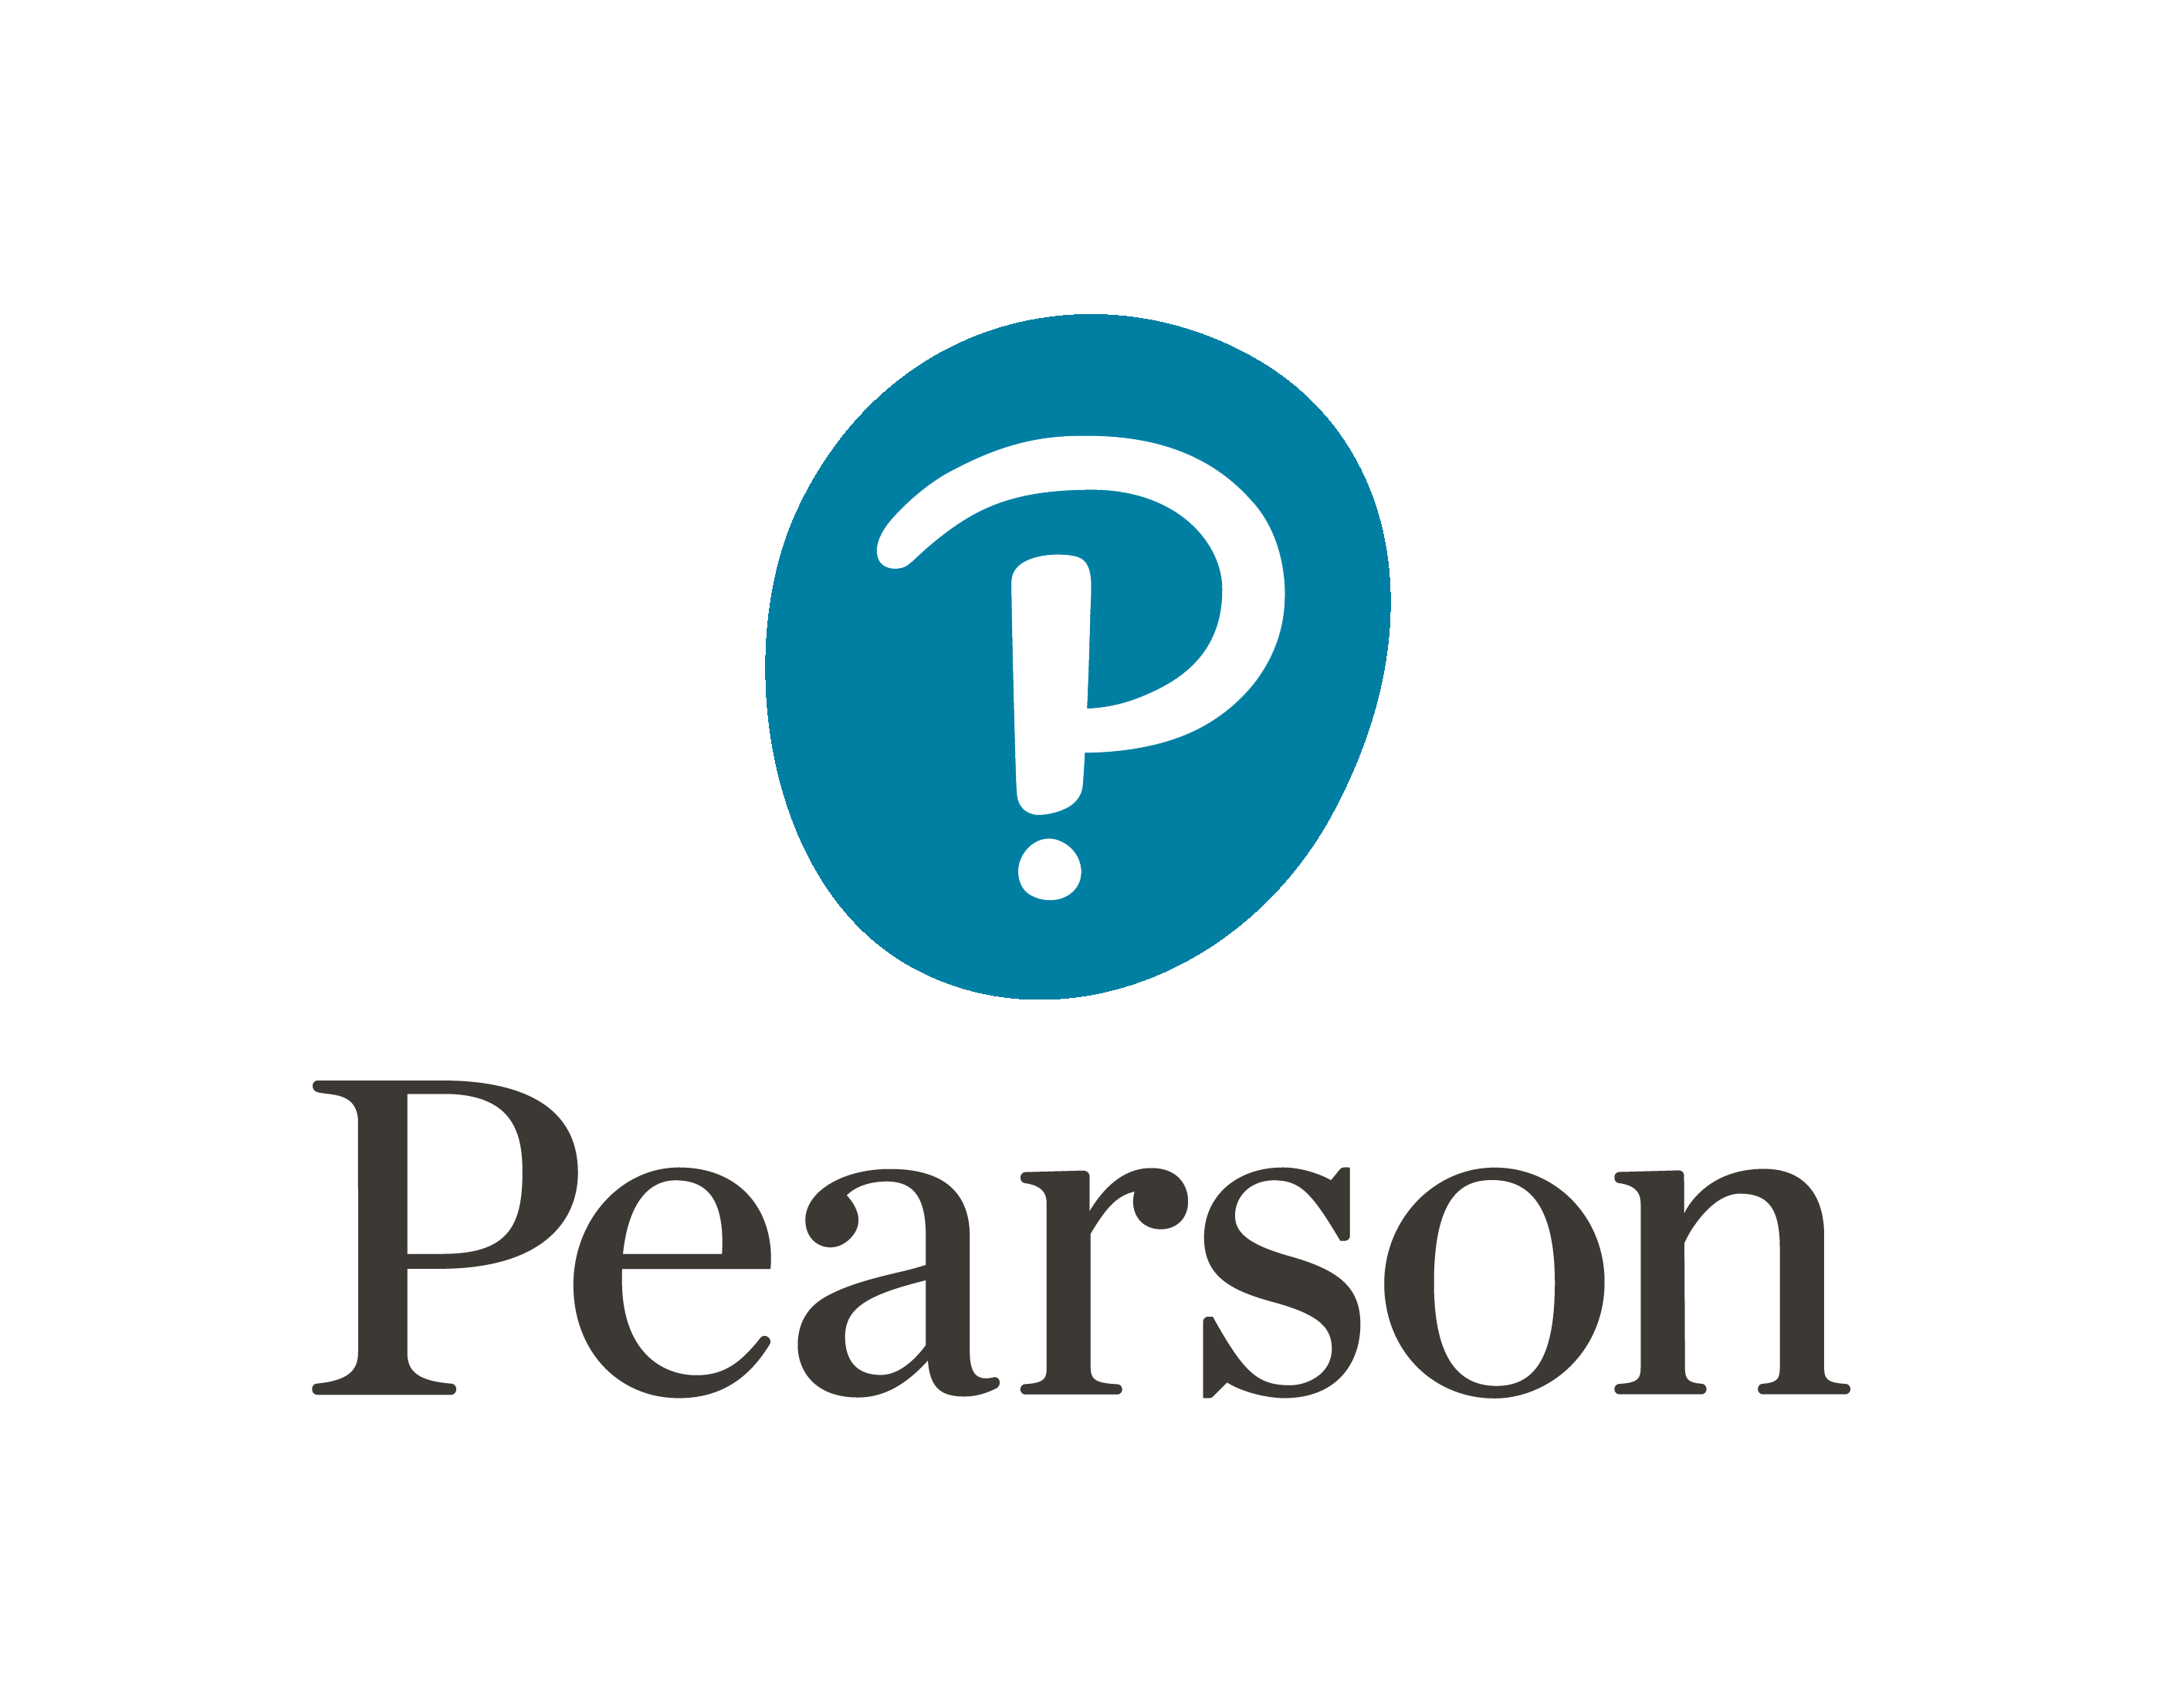 Duquesne University School Of Nursing And Pearson Partner To